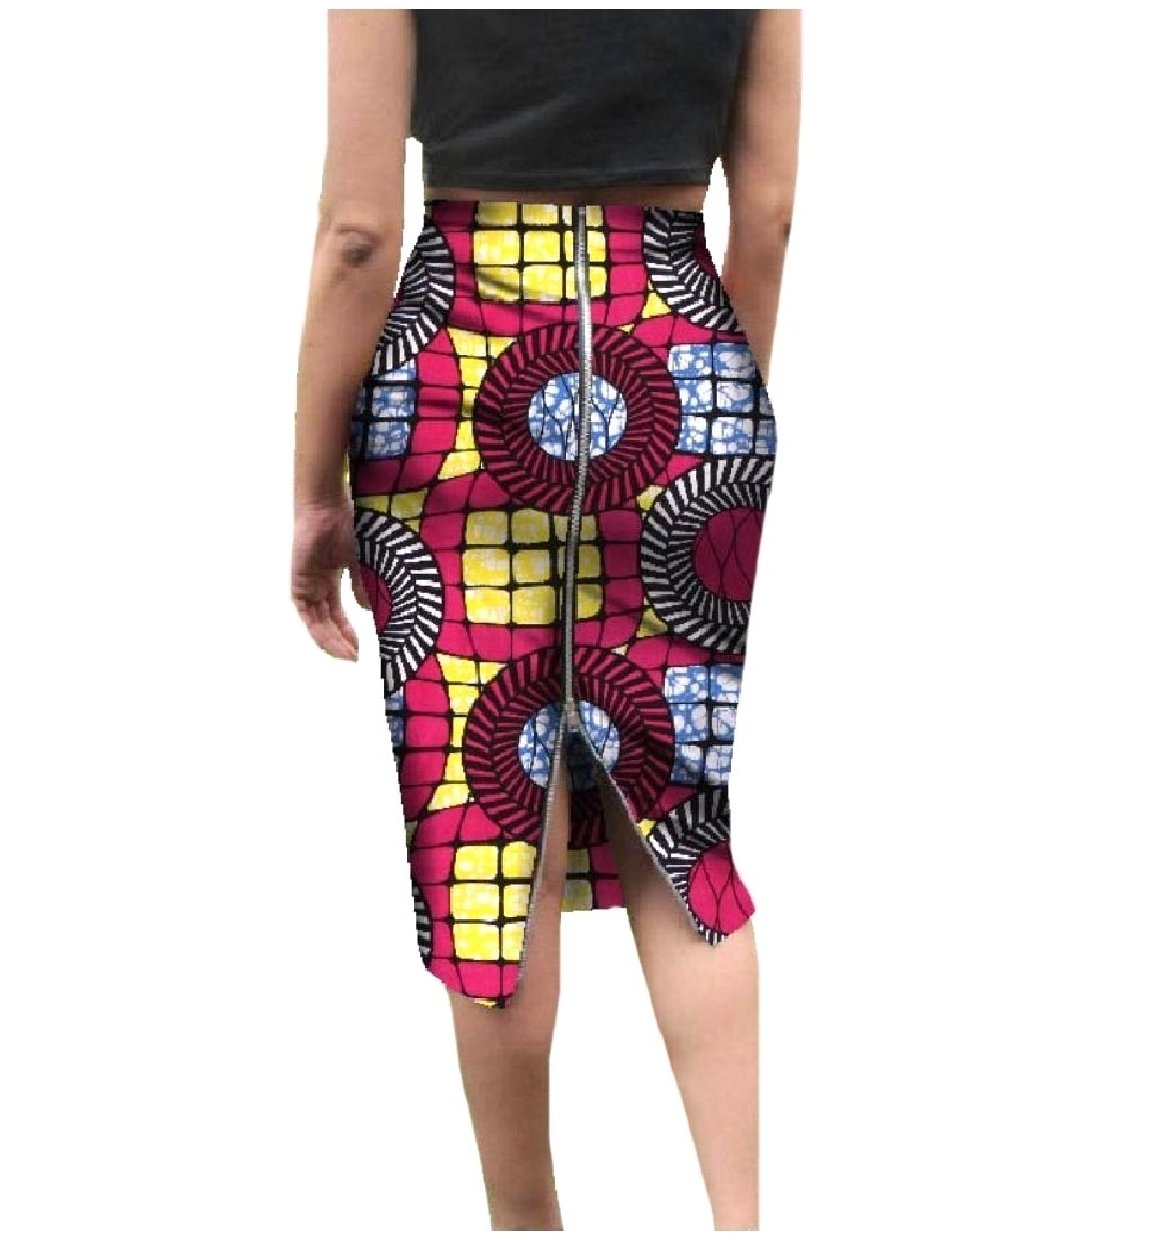 SportsX Womens Dashiki African Wax Fabric With Zips Fine Cotton Skirt Rose Red 2XL by SportsX (Image #1)